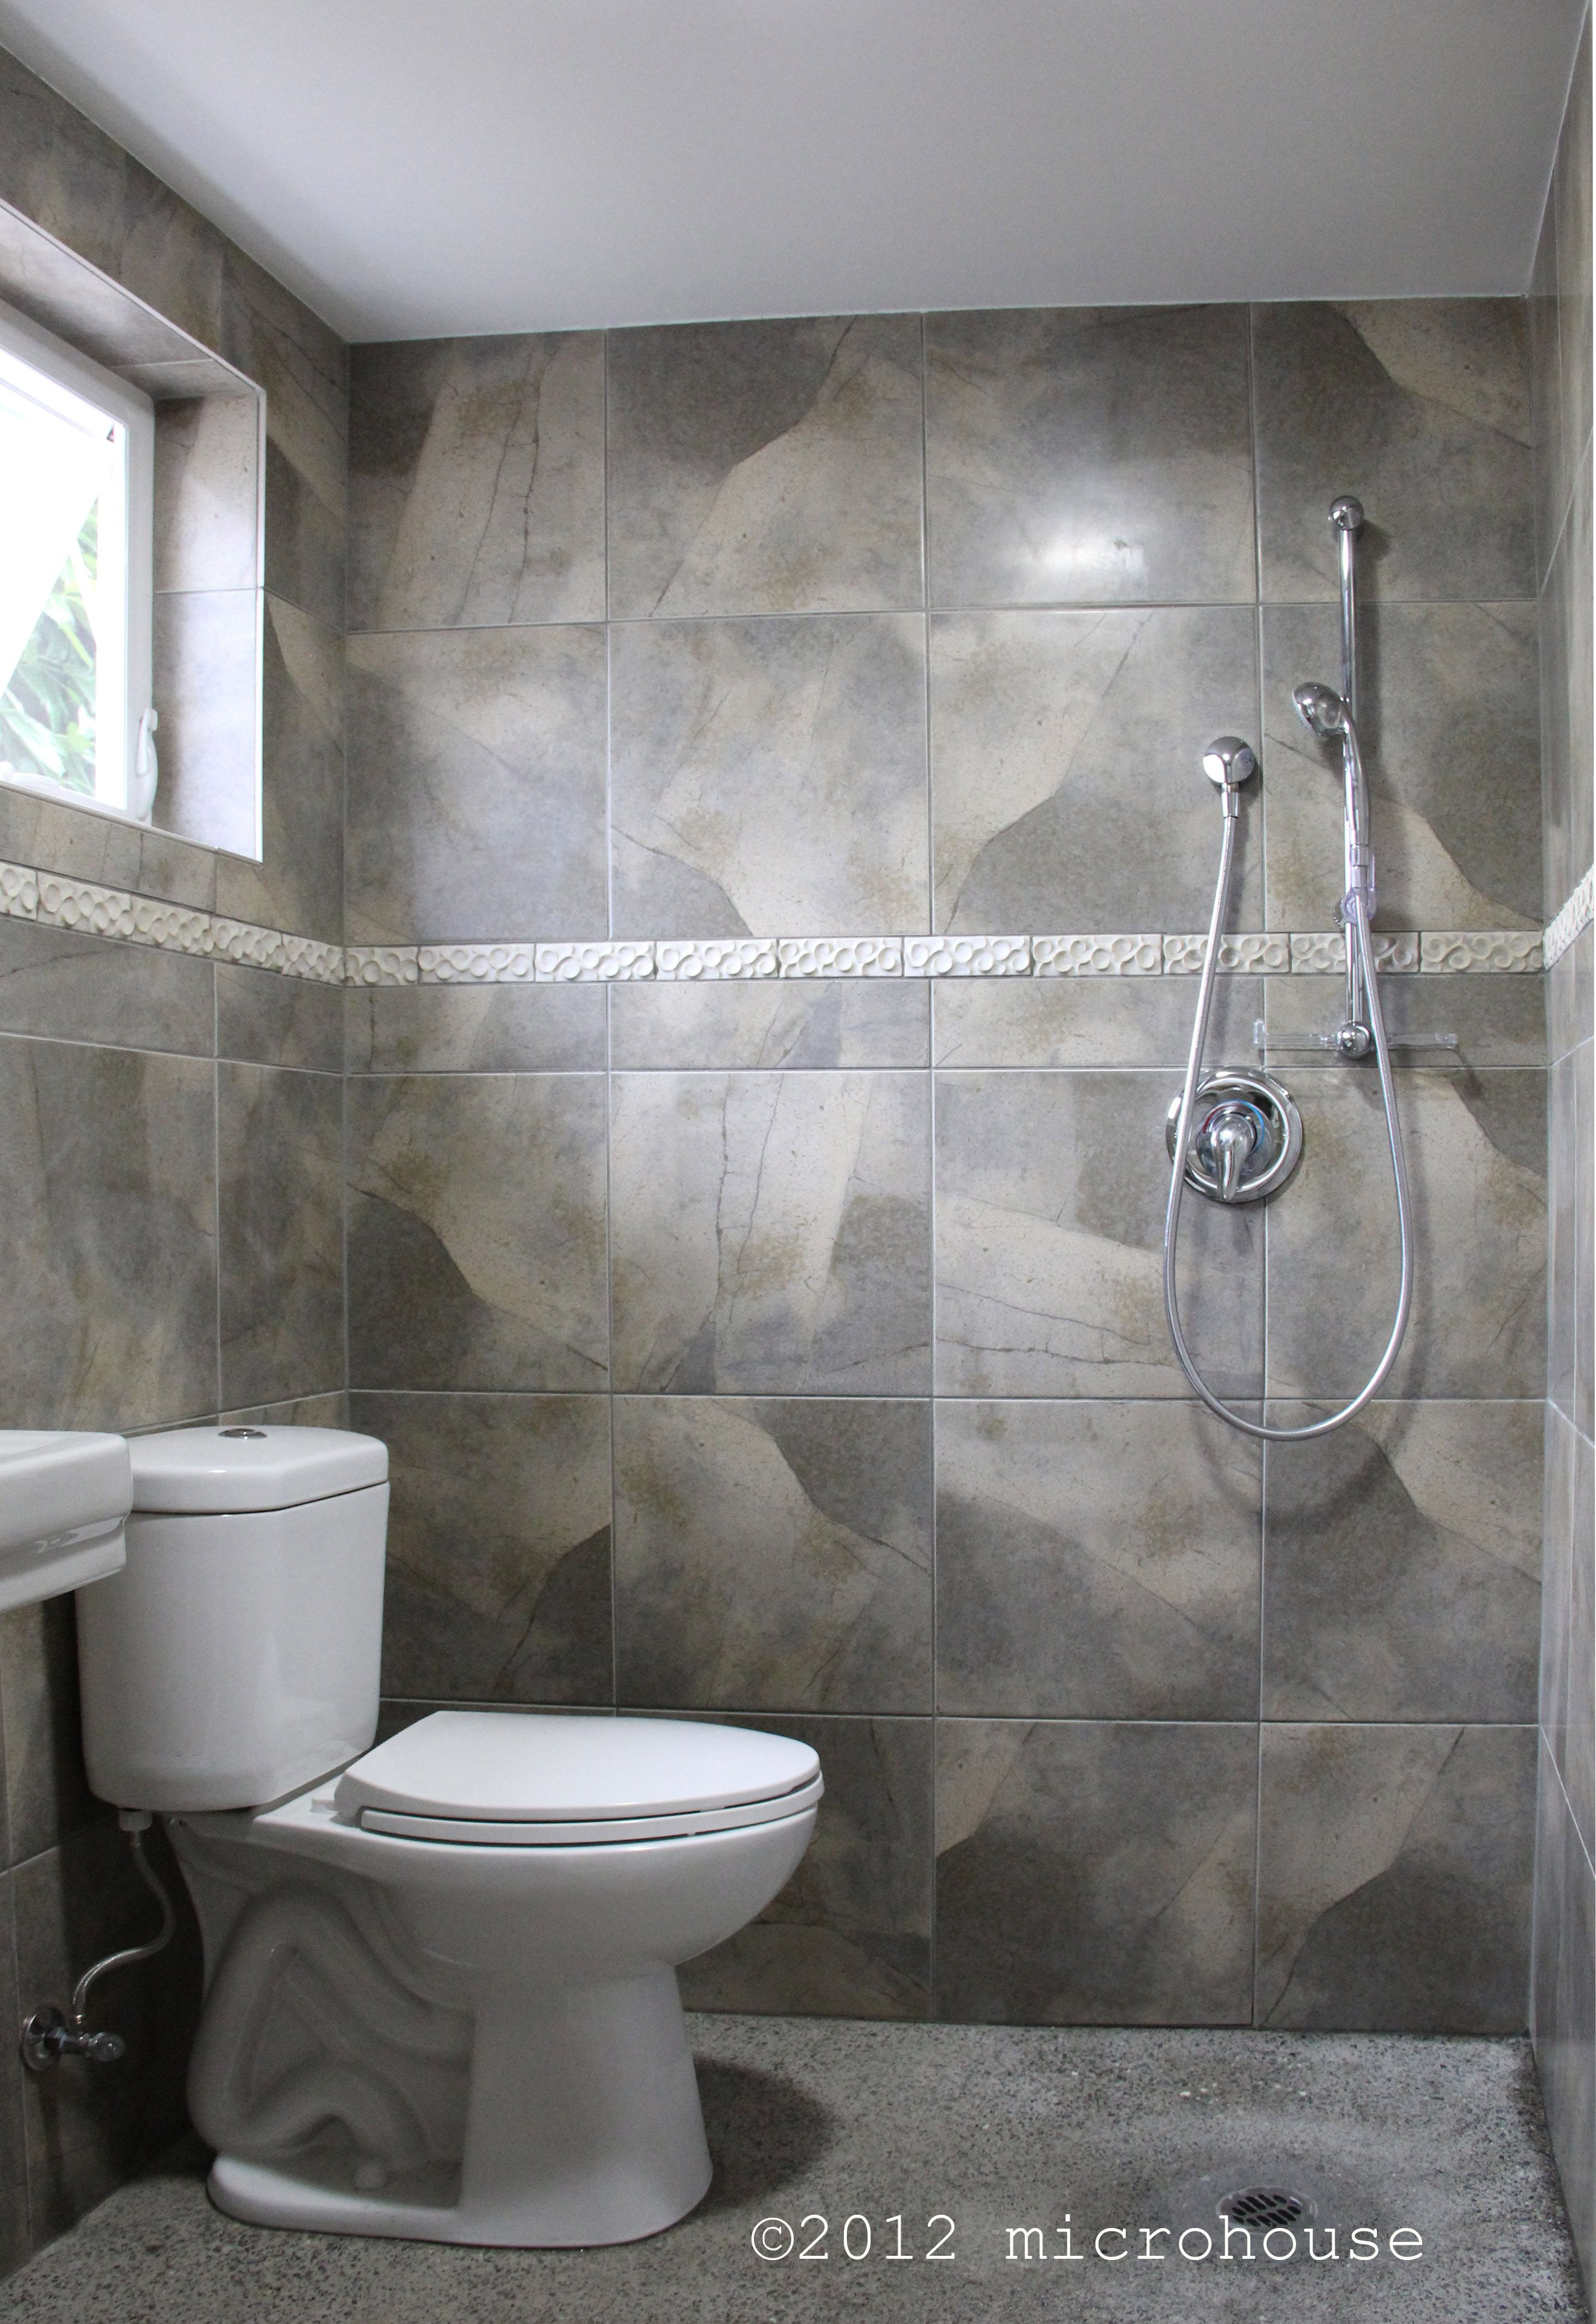 Wet Room Design: A 384 S.f. Backyard Cottage For A Great Grandmother. The